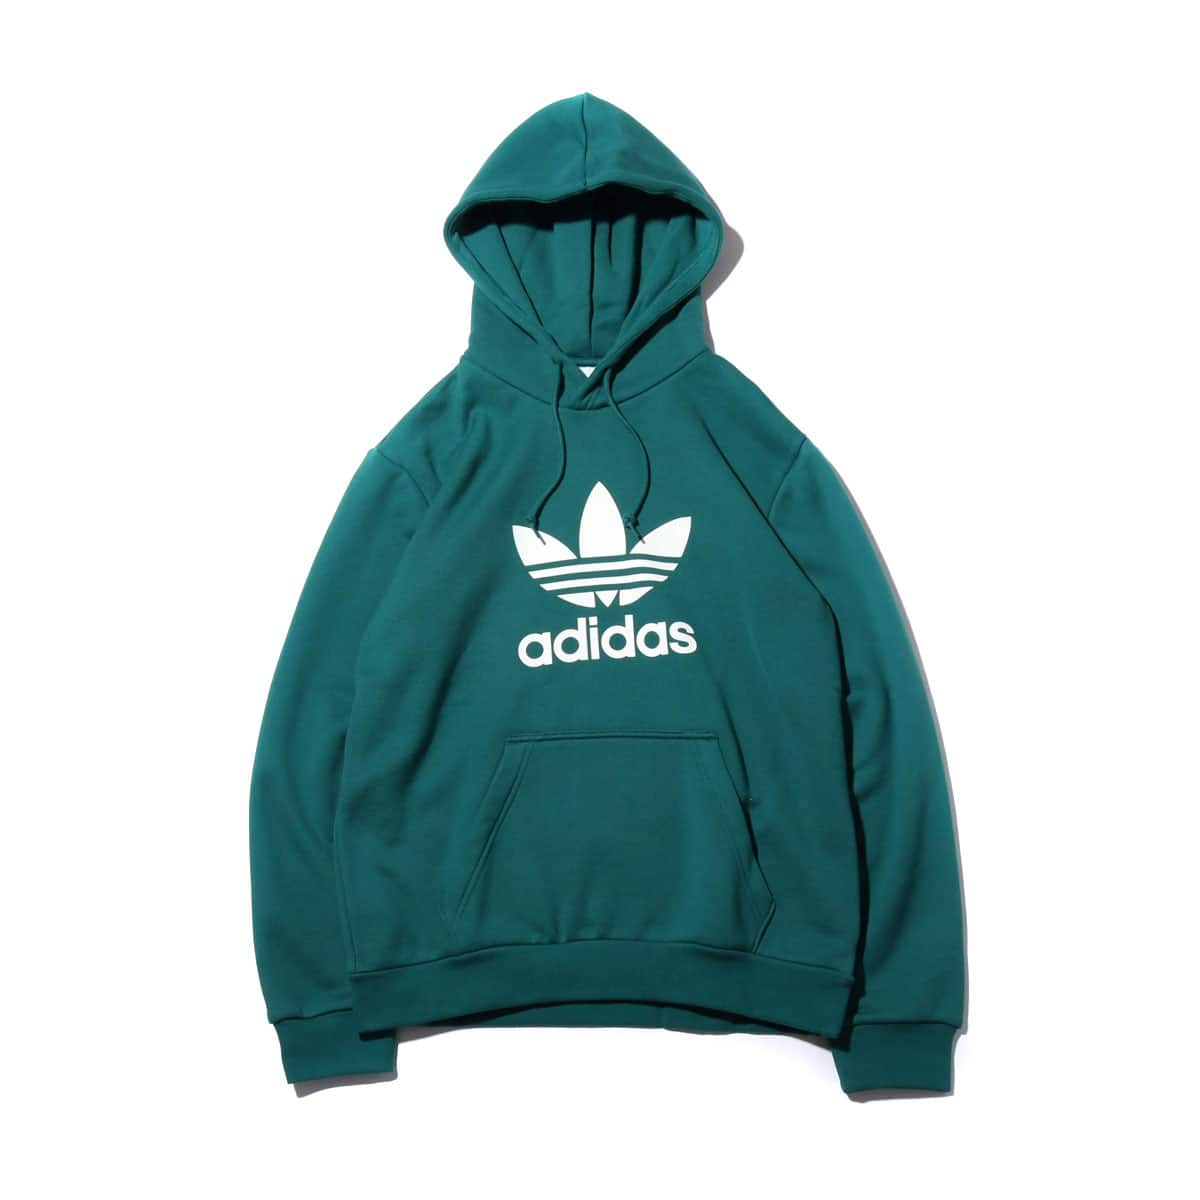 adidas TREFOIL HOODIE NOBLE GREEN/WHITE 19FW-I_photo_large